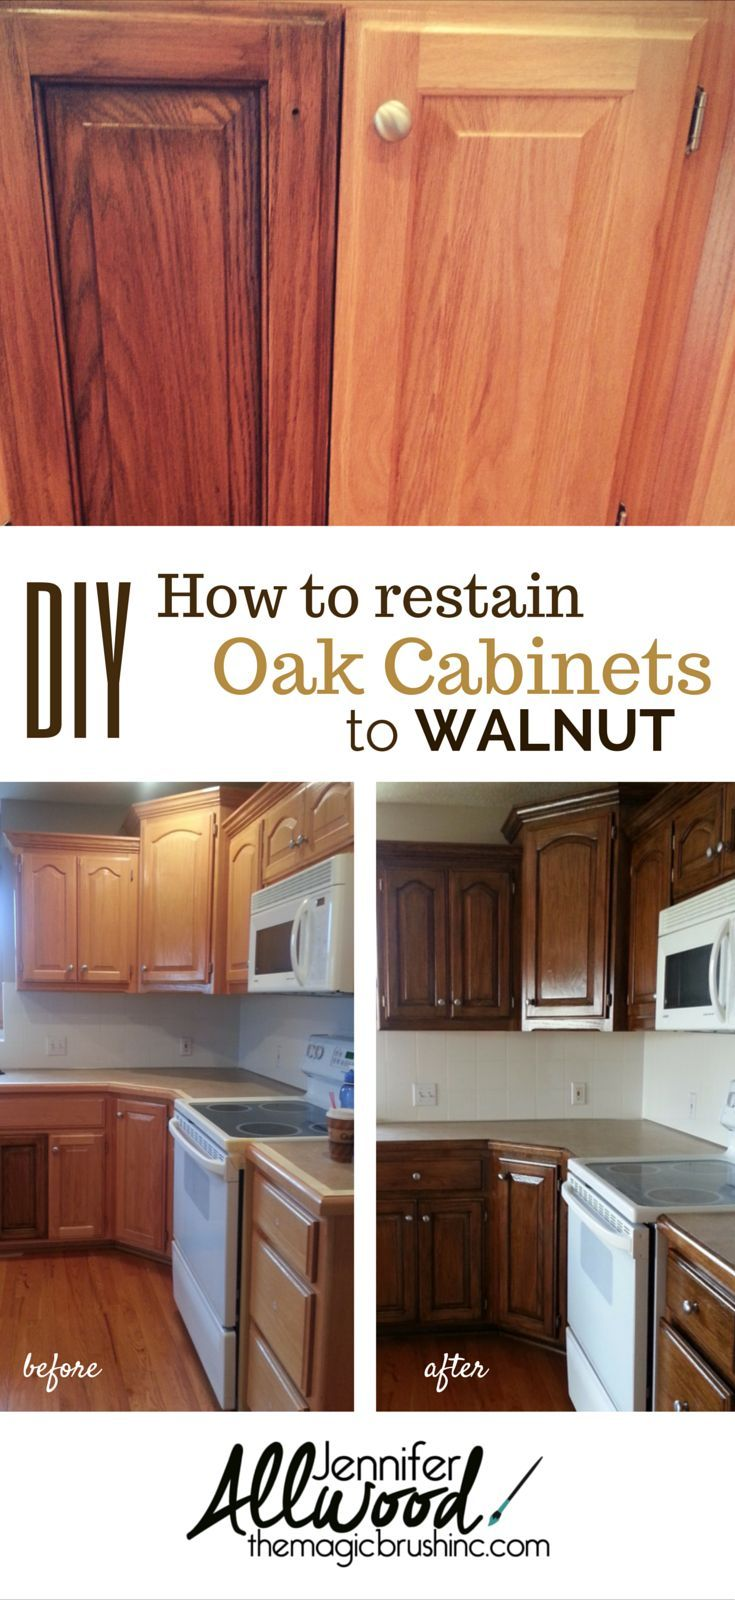 How To Change Your Tired Oak Kitchen Cabinets A Dark Walnut Stain Themagicbrushinc S Video Has Step By Instructions Products And Trade